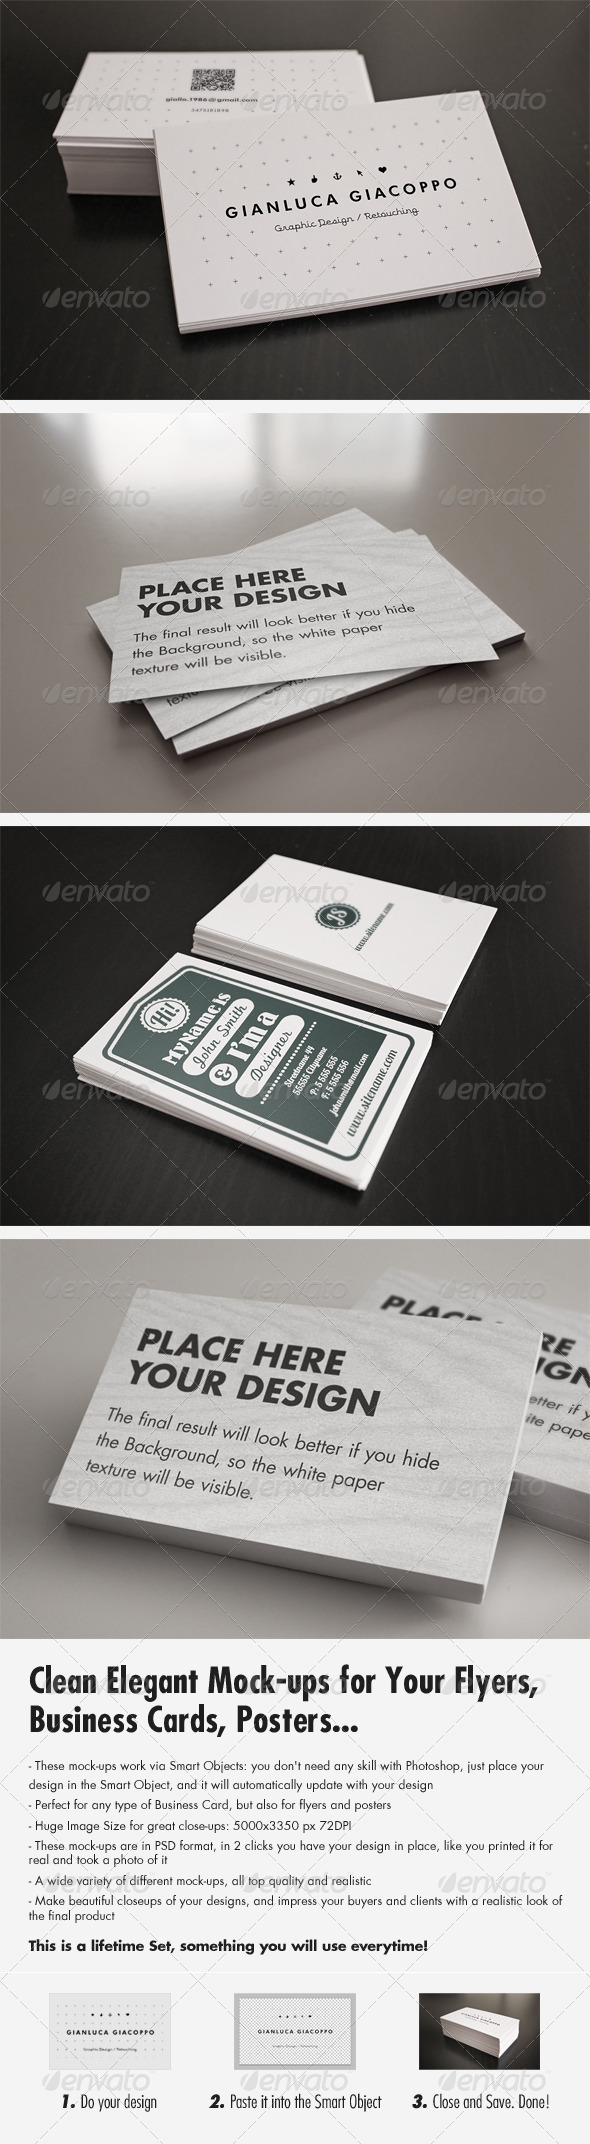 Flyer/Business Card Clean Realistic Mockups Set 2  - Business Cards Print